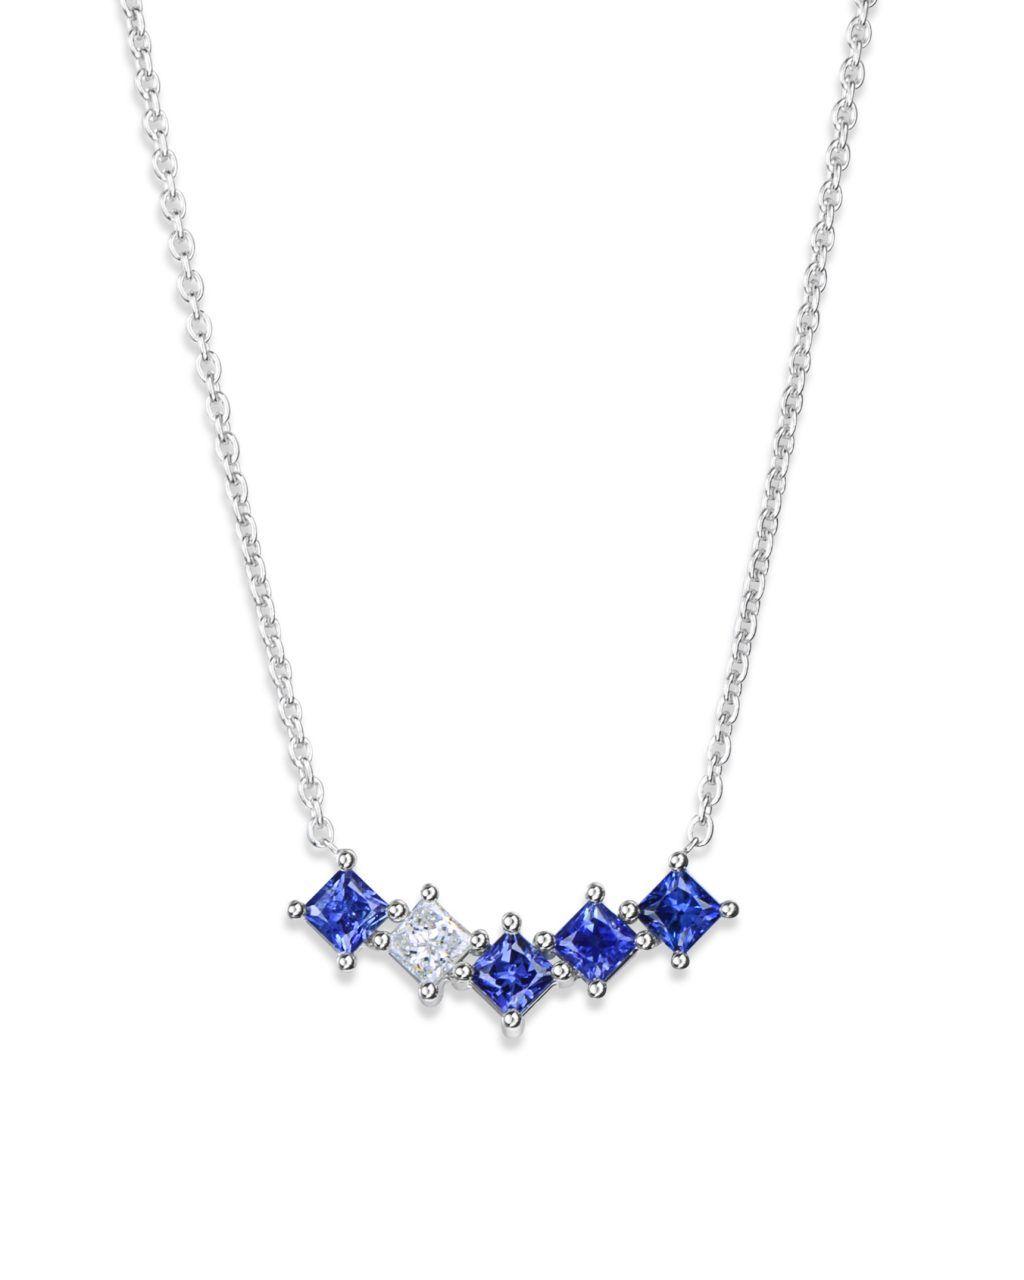 bff3252df3170 Prong-Set Sapphire and Diamond Necklace in 2019 | Jewelry Box ...